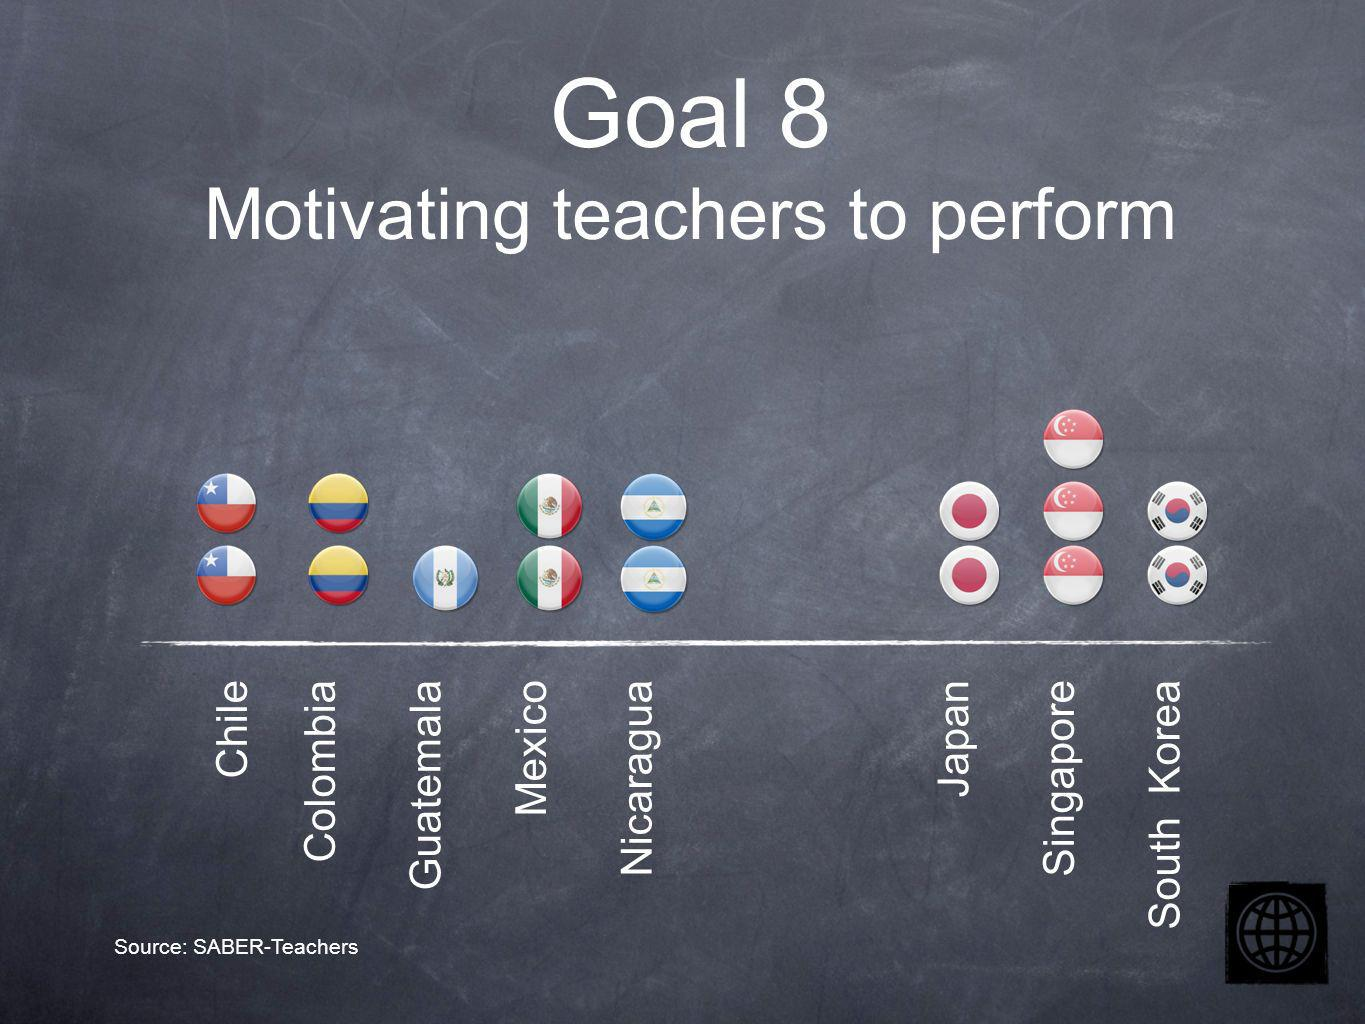 Chile Colombia Guatemala Mexico Nicaragua Japan Singapore South Korea Goal 8 Motivating teachers to perform Source: SABER-Teachers